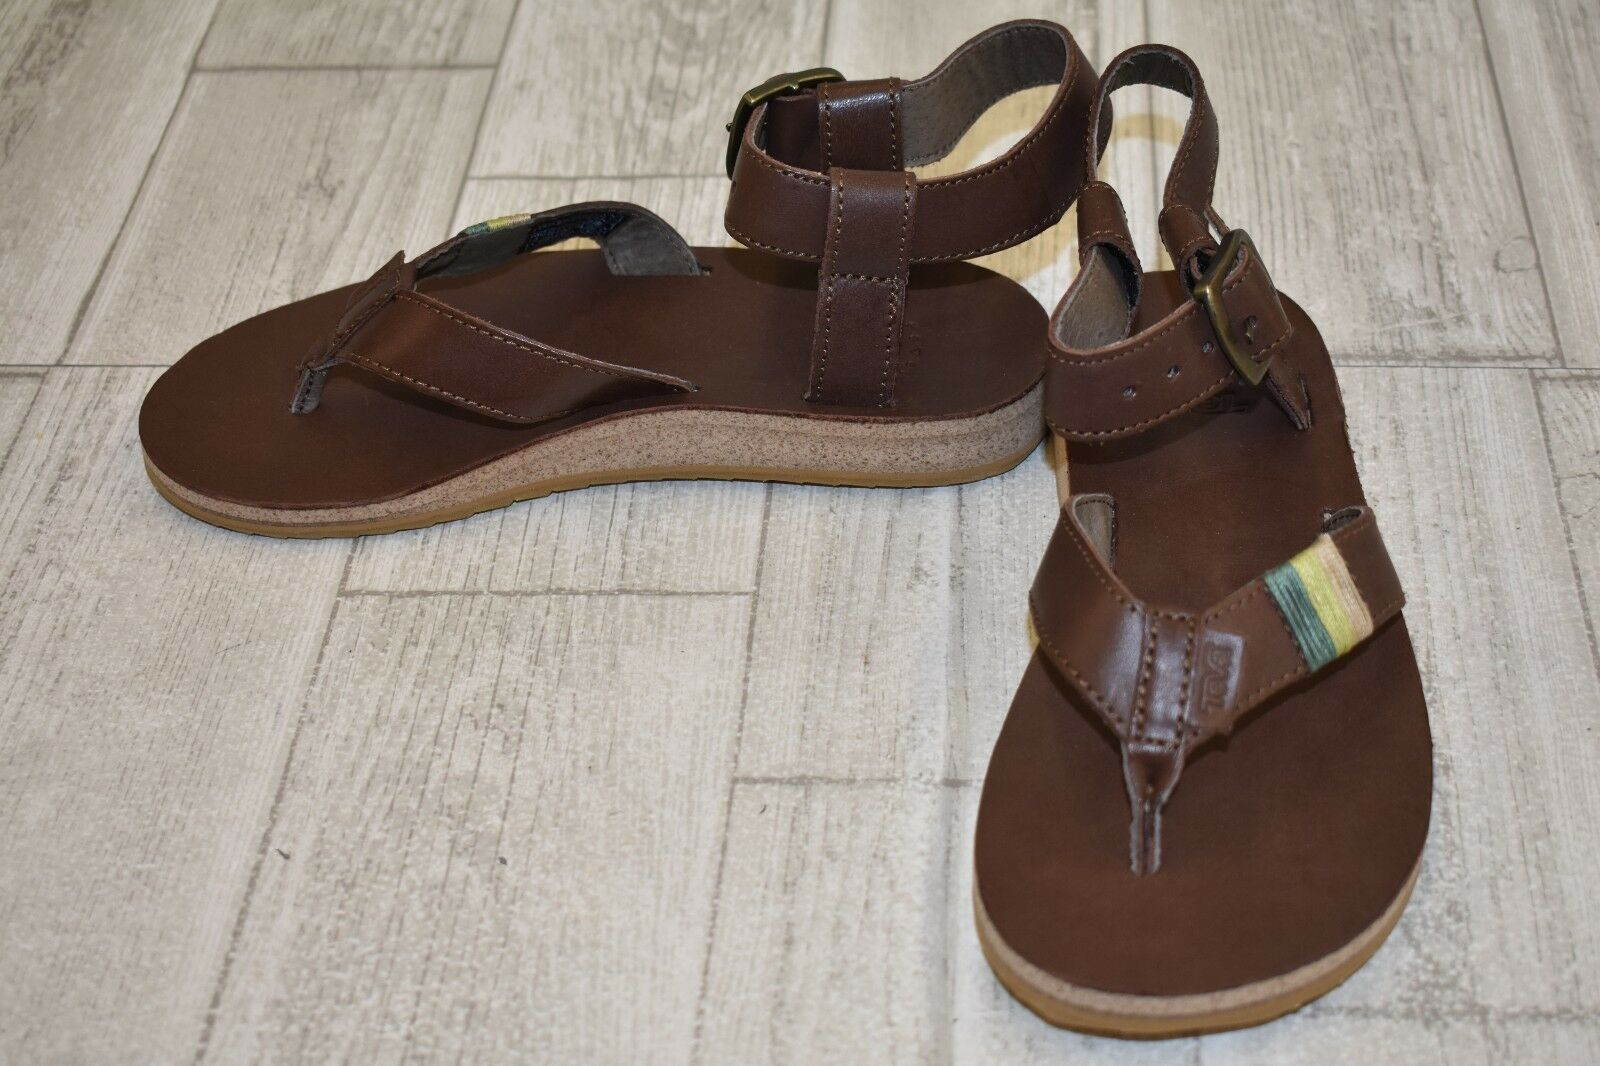 Teva Original Crafted Sandal - Women's Size 6 Brown